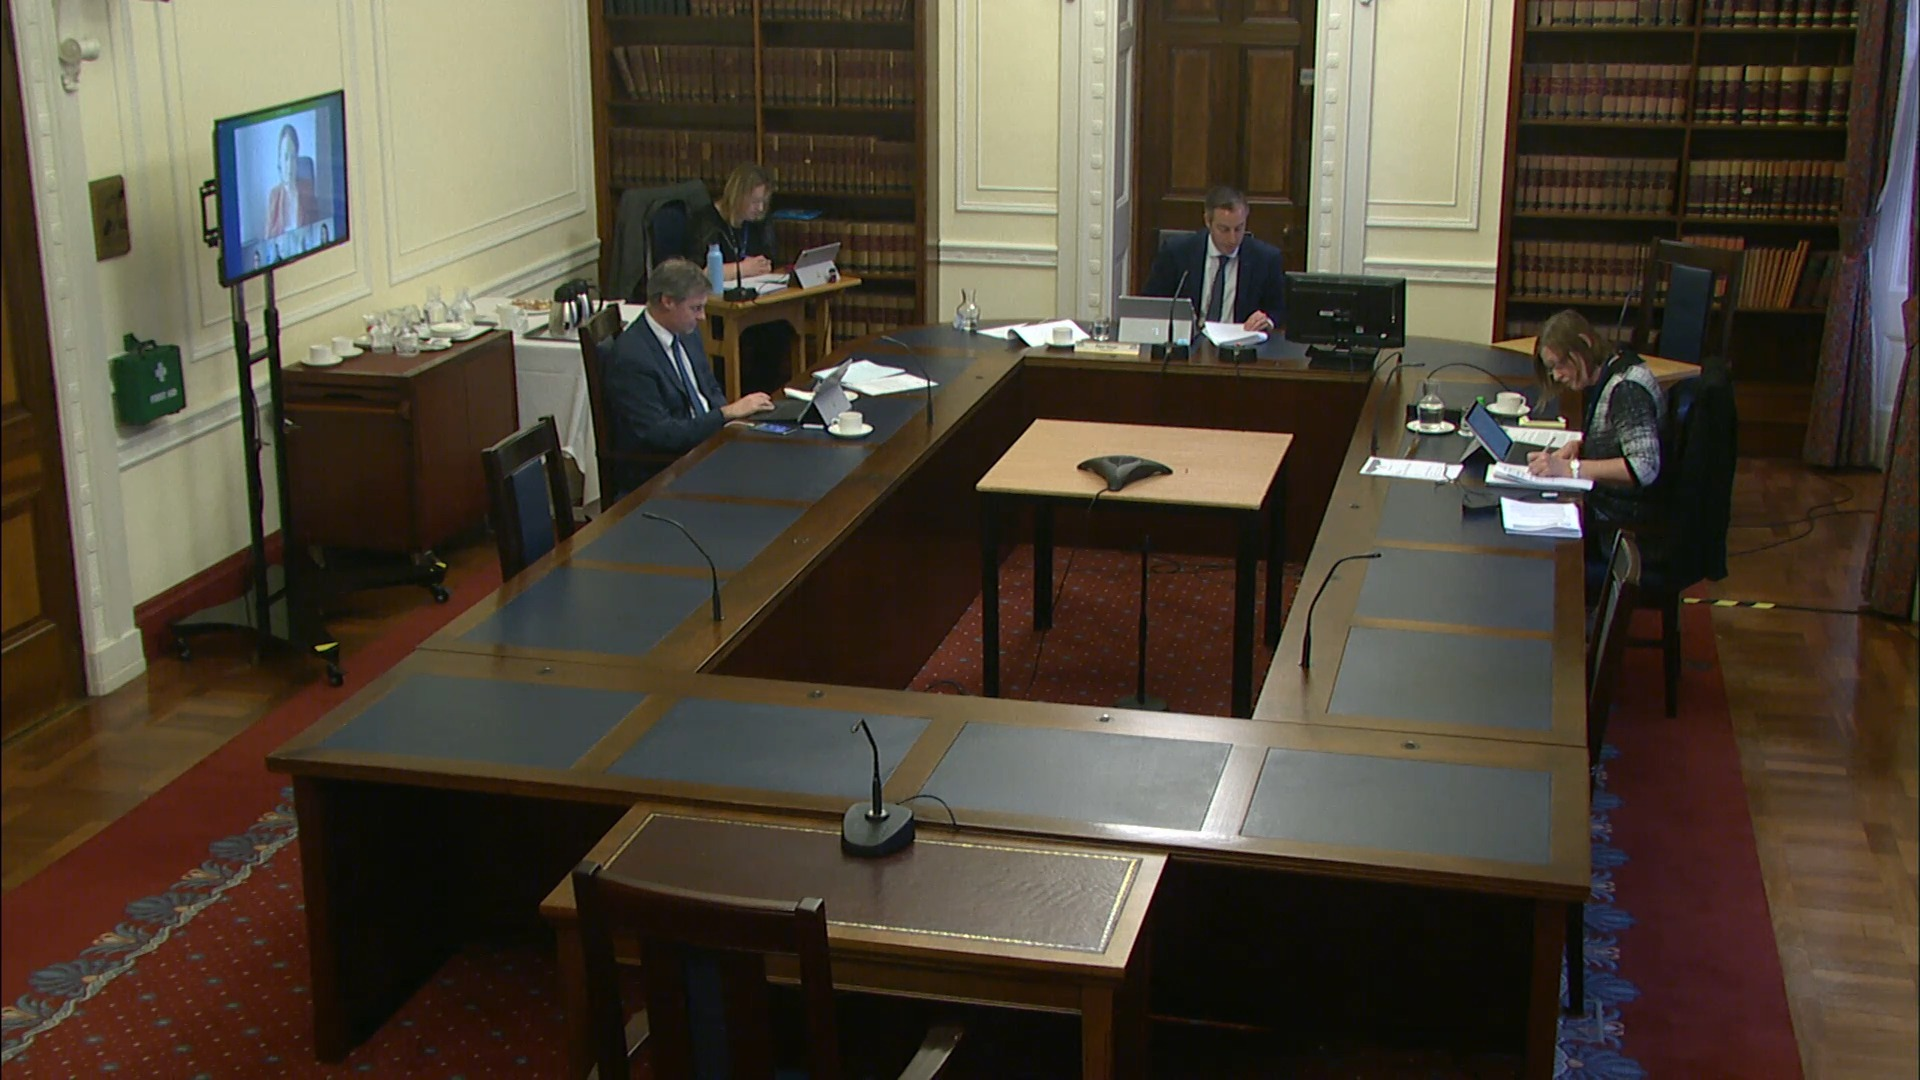 Justice Committee Meeting - Thursday 25th March 2021